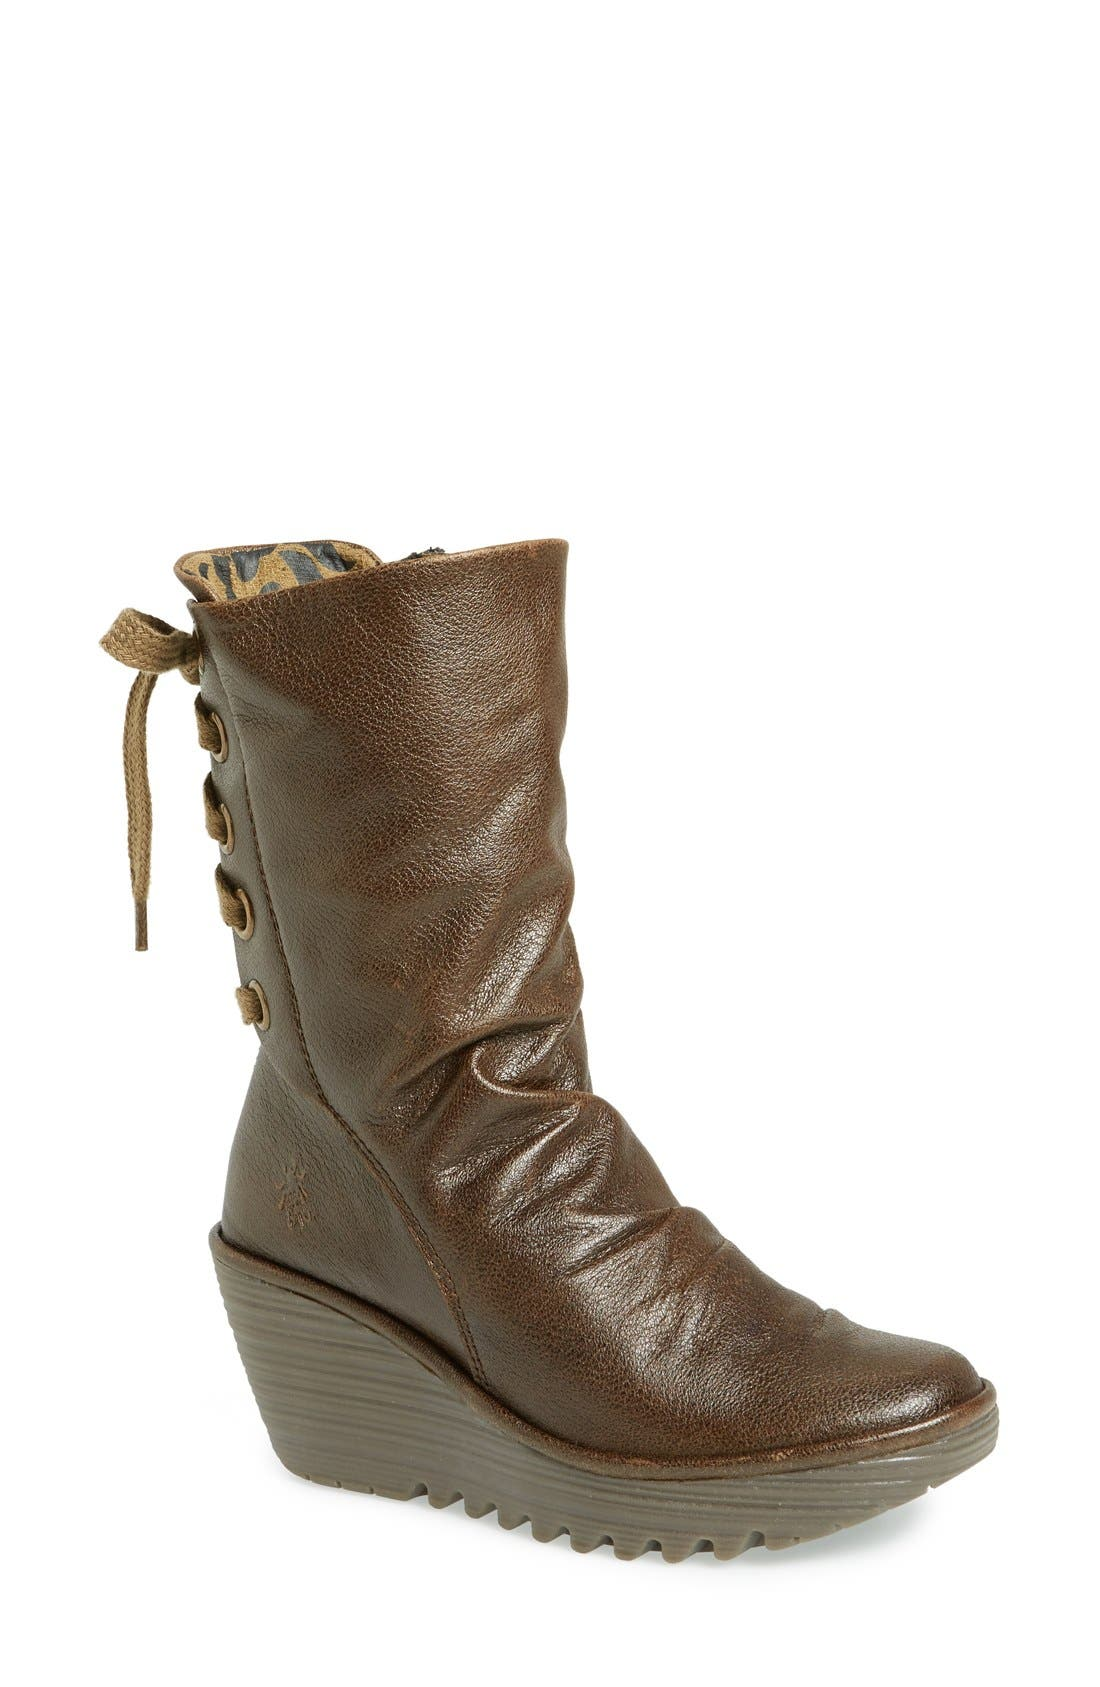 Alternate Image 1 Selected - Fly London 'Yada' Boot (Women)